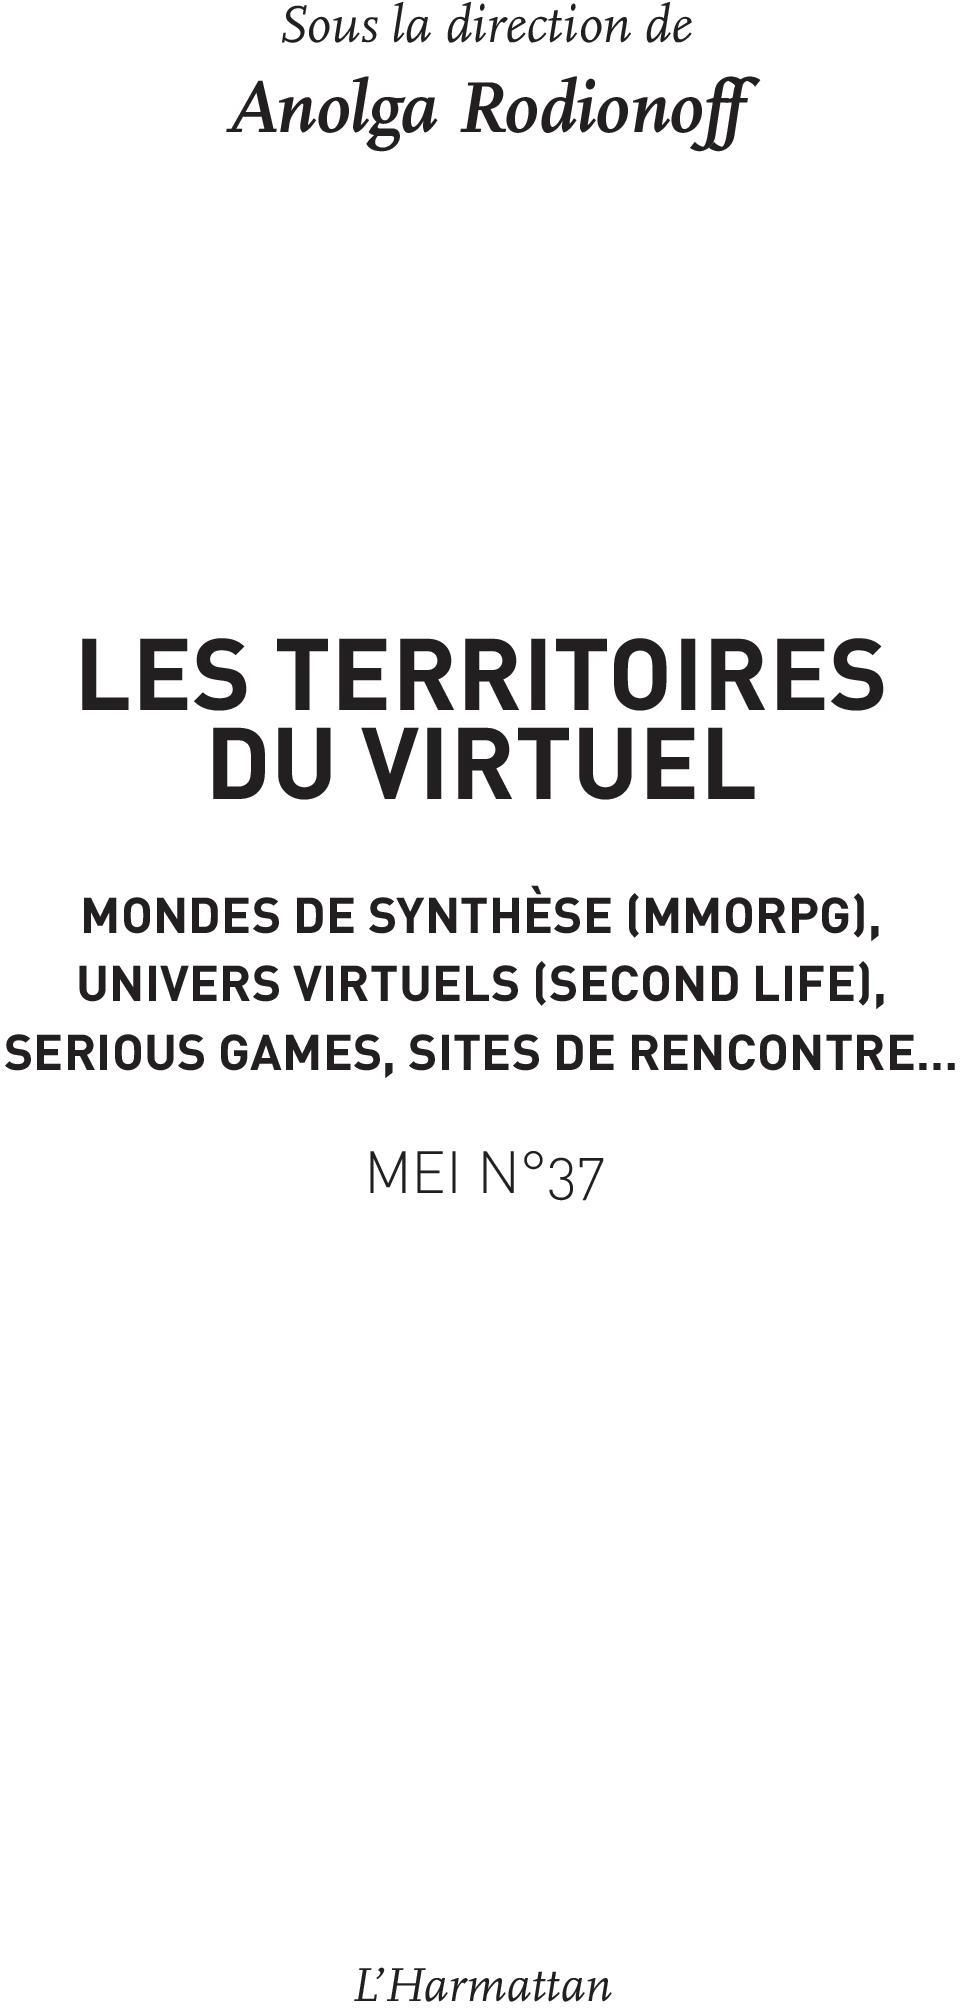 (MMORPG), univers virtuels (Second Life),